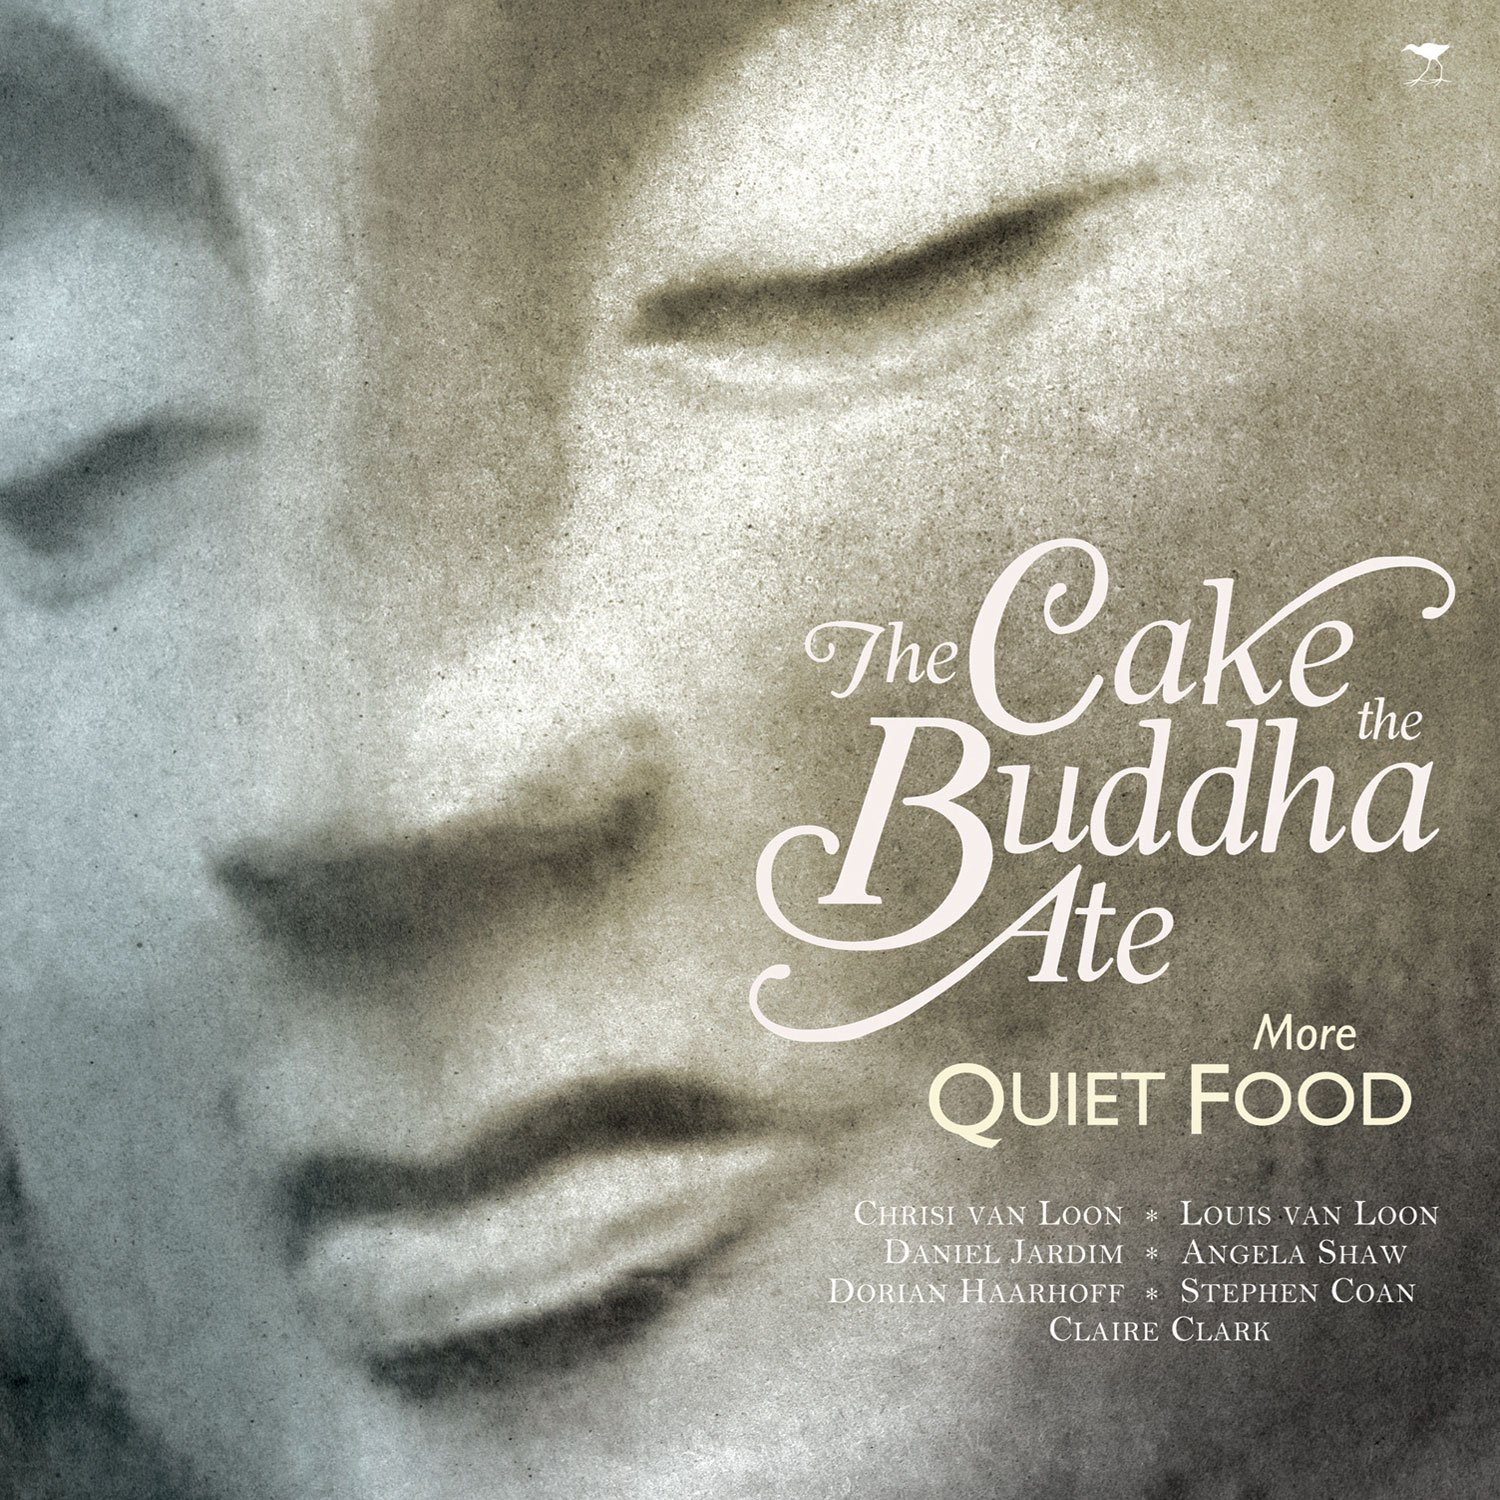 The cake the buddha ate amazon daniel jardim 9781770097728 the cake the buddha ate amazon daniel jardim 9781770097728 books forumfinder Gallery